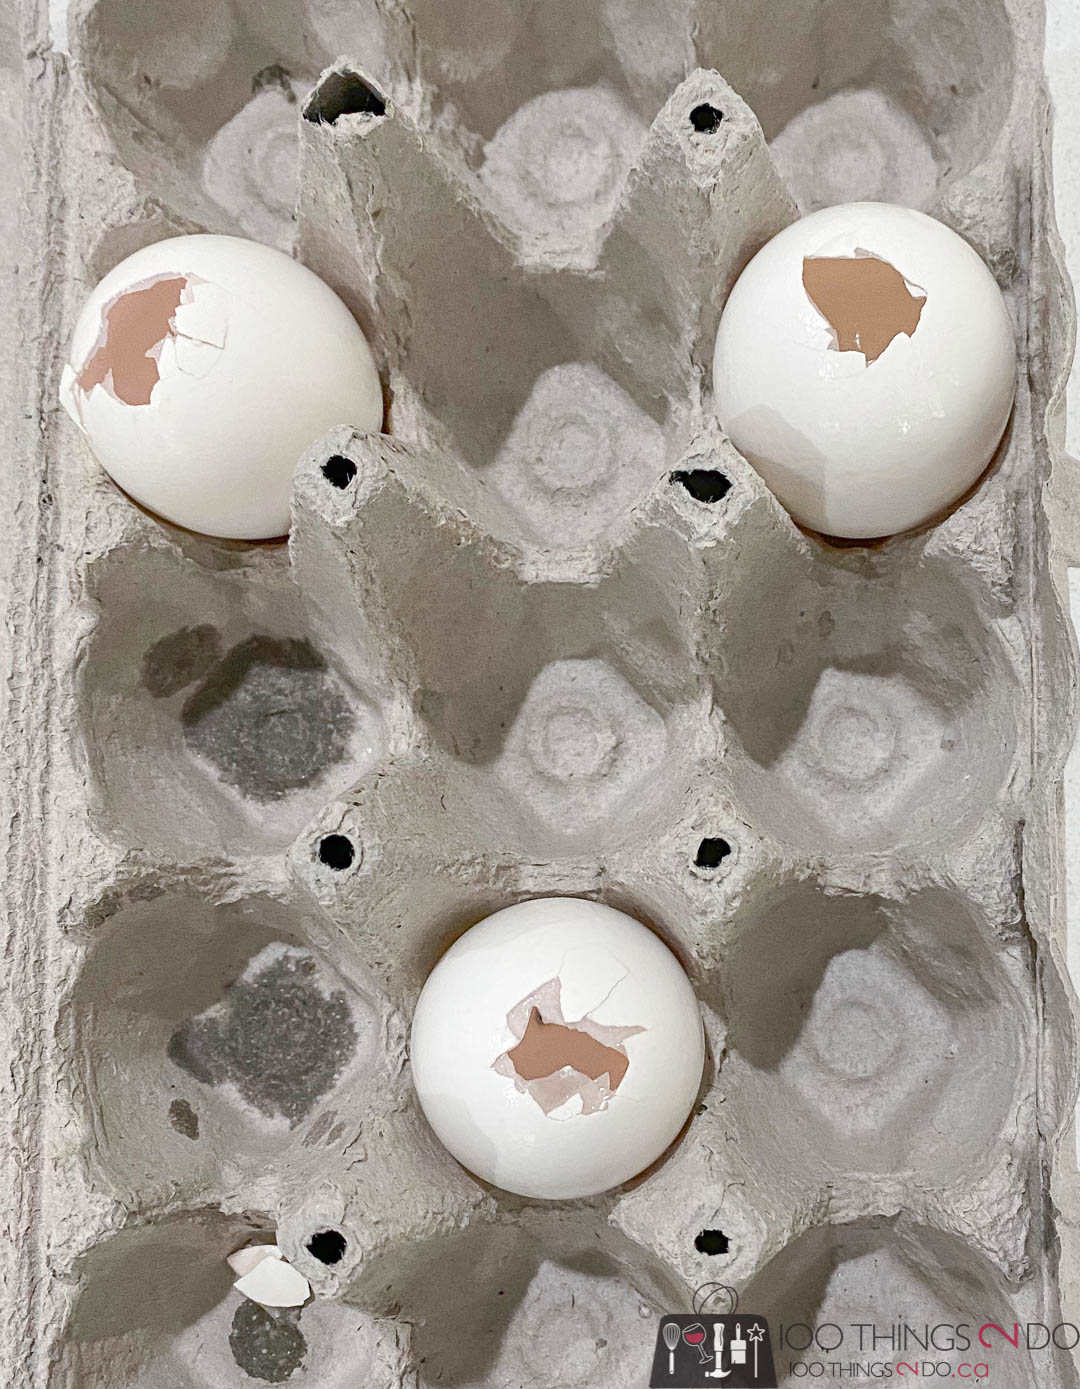 drilling holes in eggs